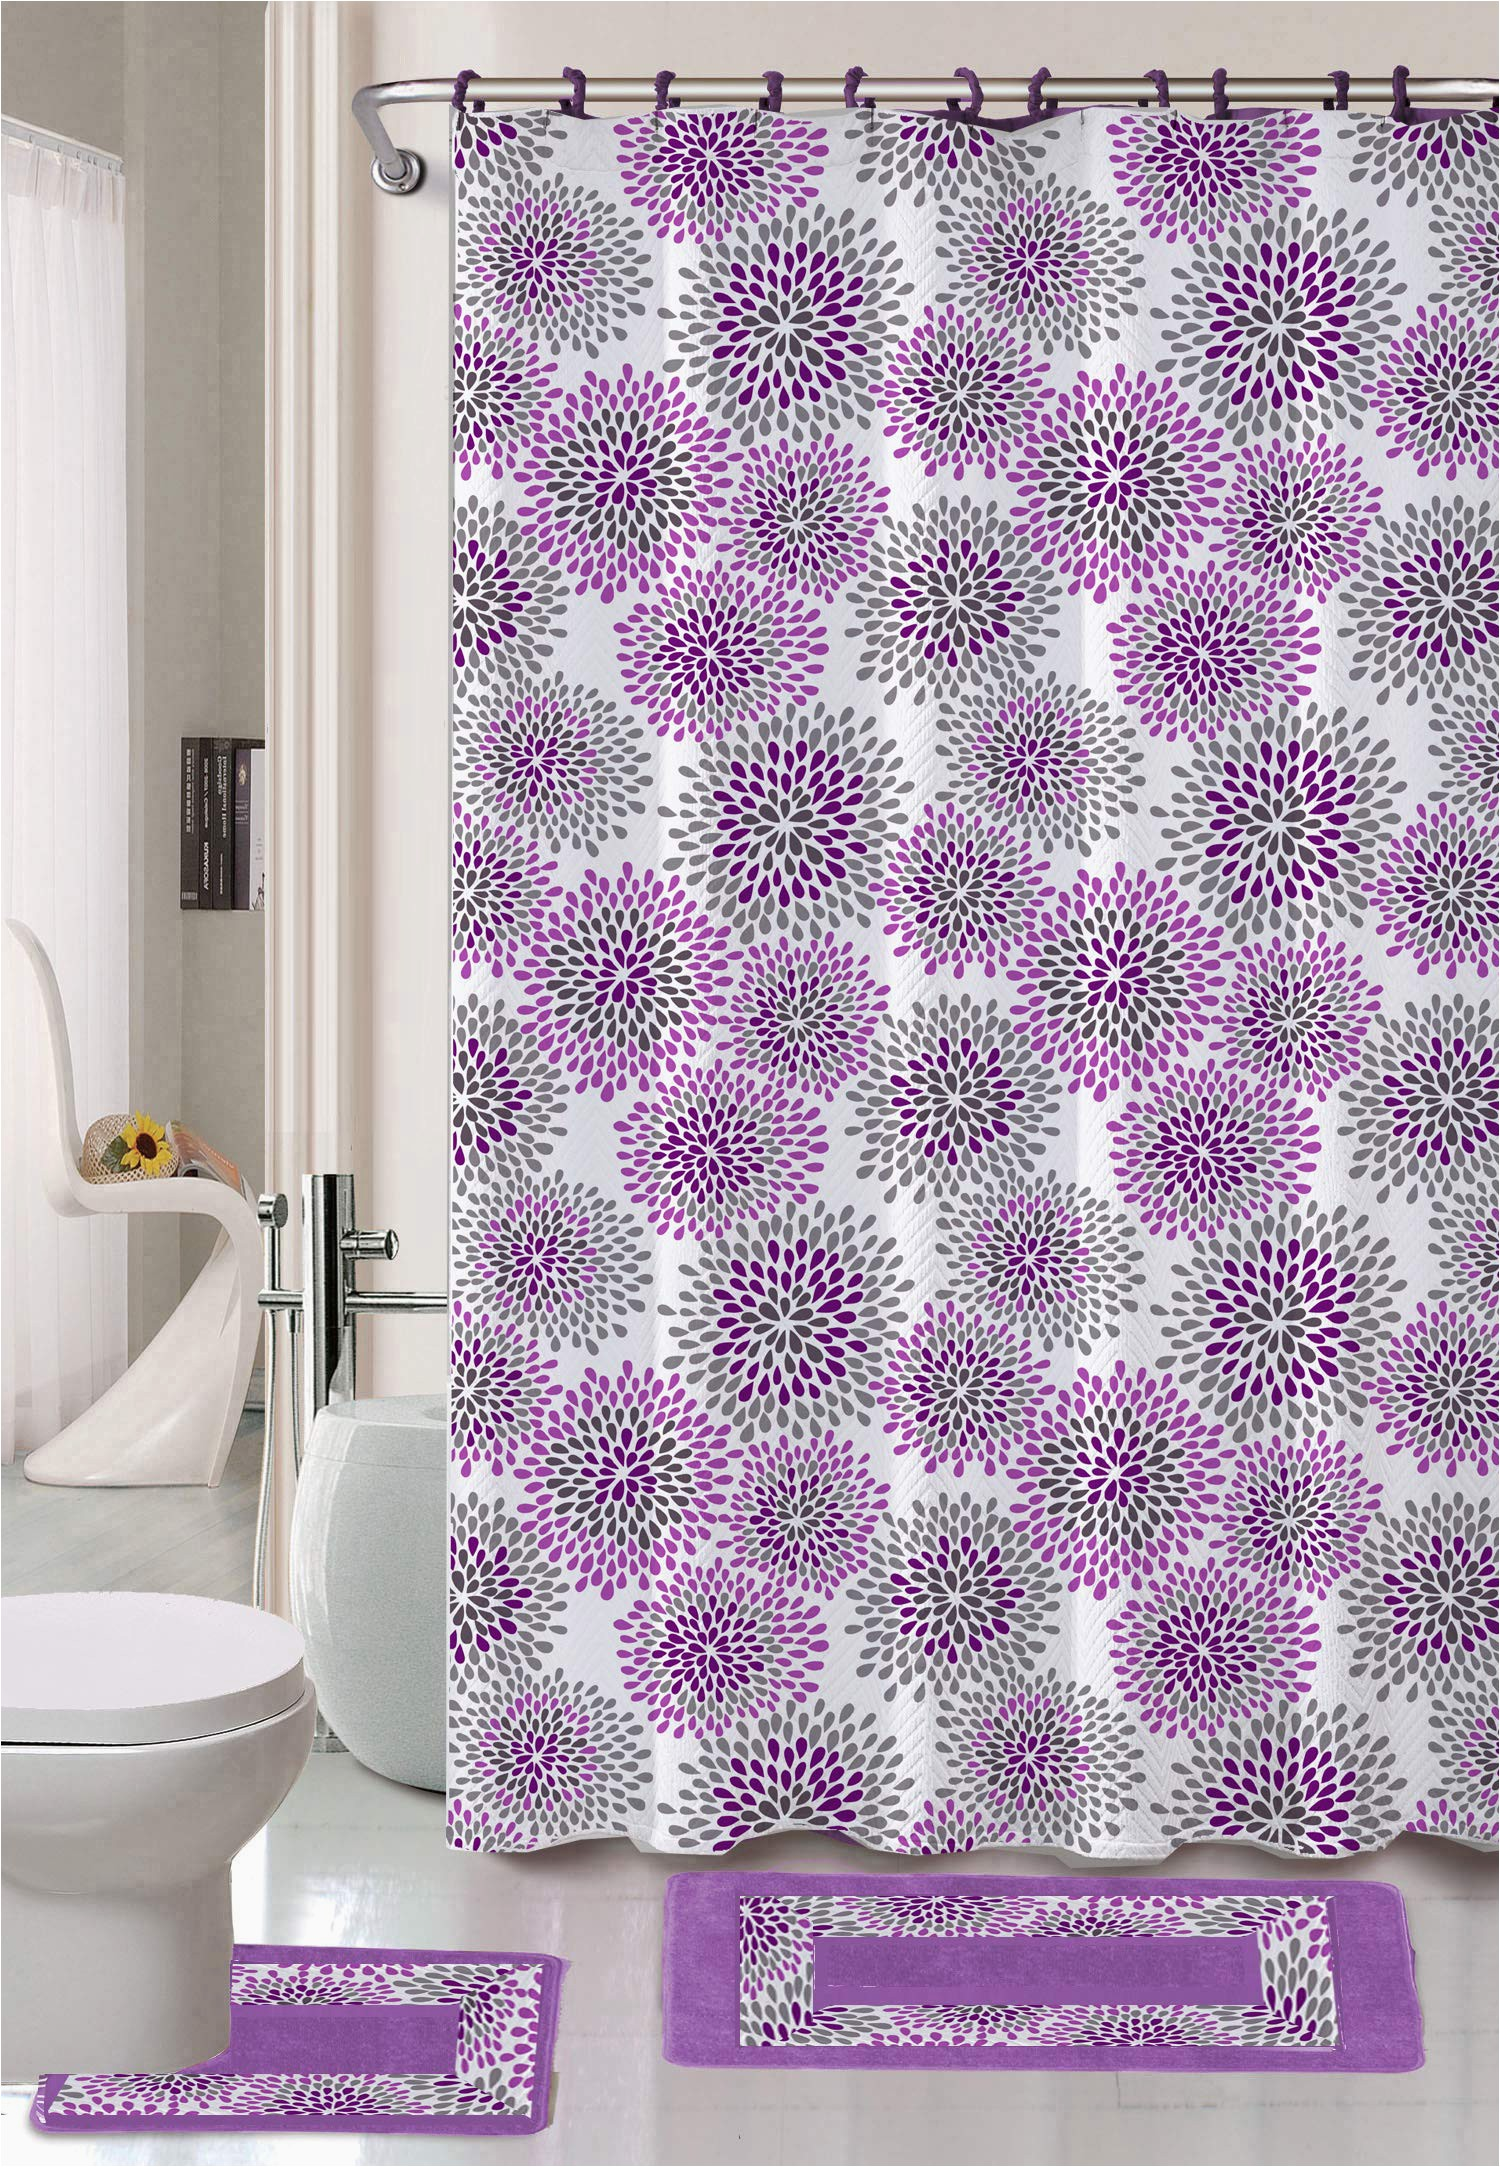 luxury home collection 15 pc bath rug set printed non slip bathroom rug mat and rug contour and shower curtain and rings hooks new lilac light purple